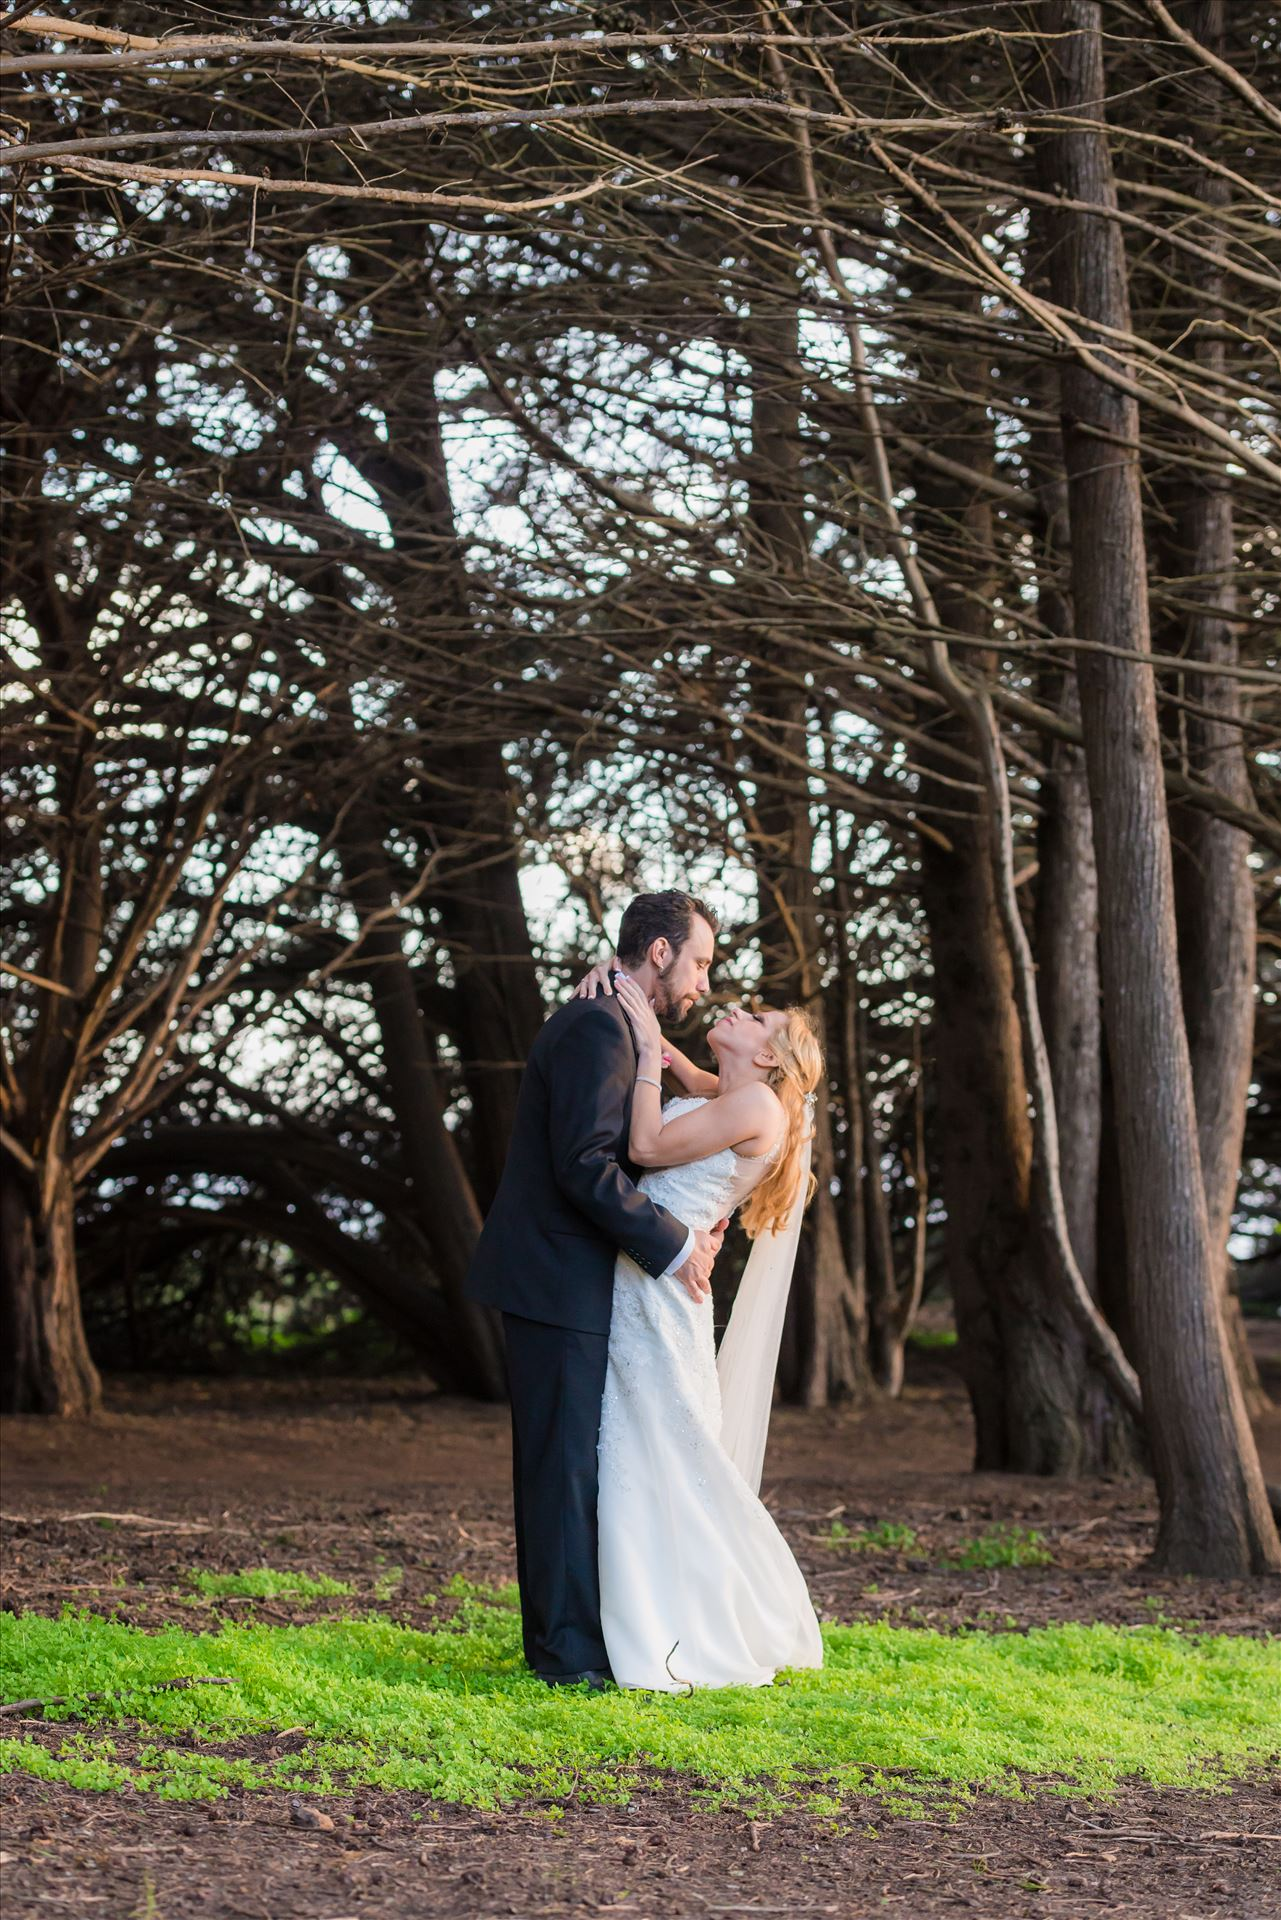 Adele and Jason 02 - Ragged Point Inn Wedding Elopement photography by Mirror's Edge Photography in San Simeon Cambria California. Bride and groom in the trees by Sarah Williams